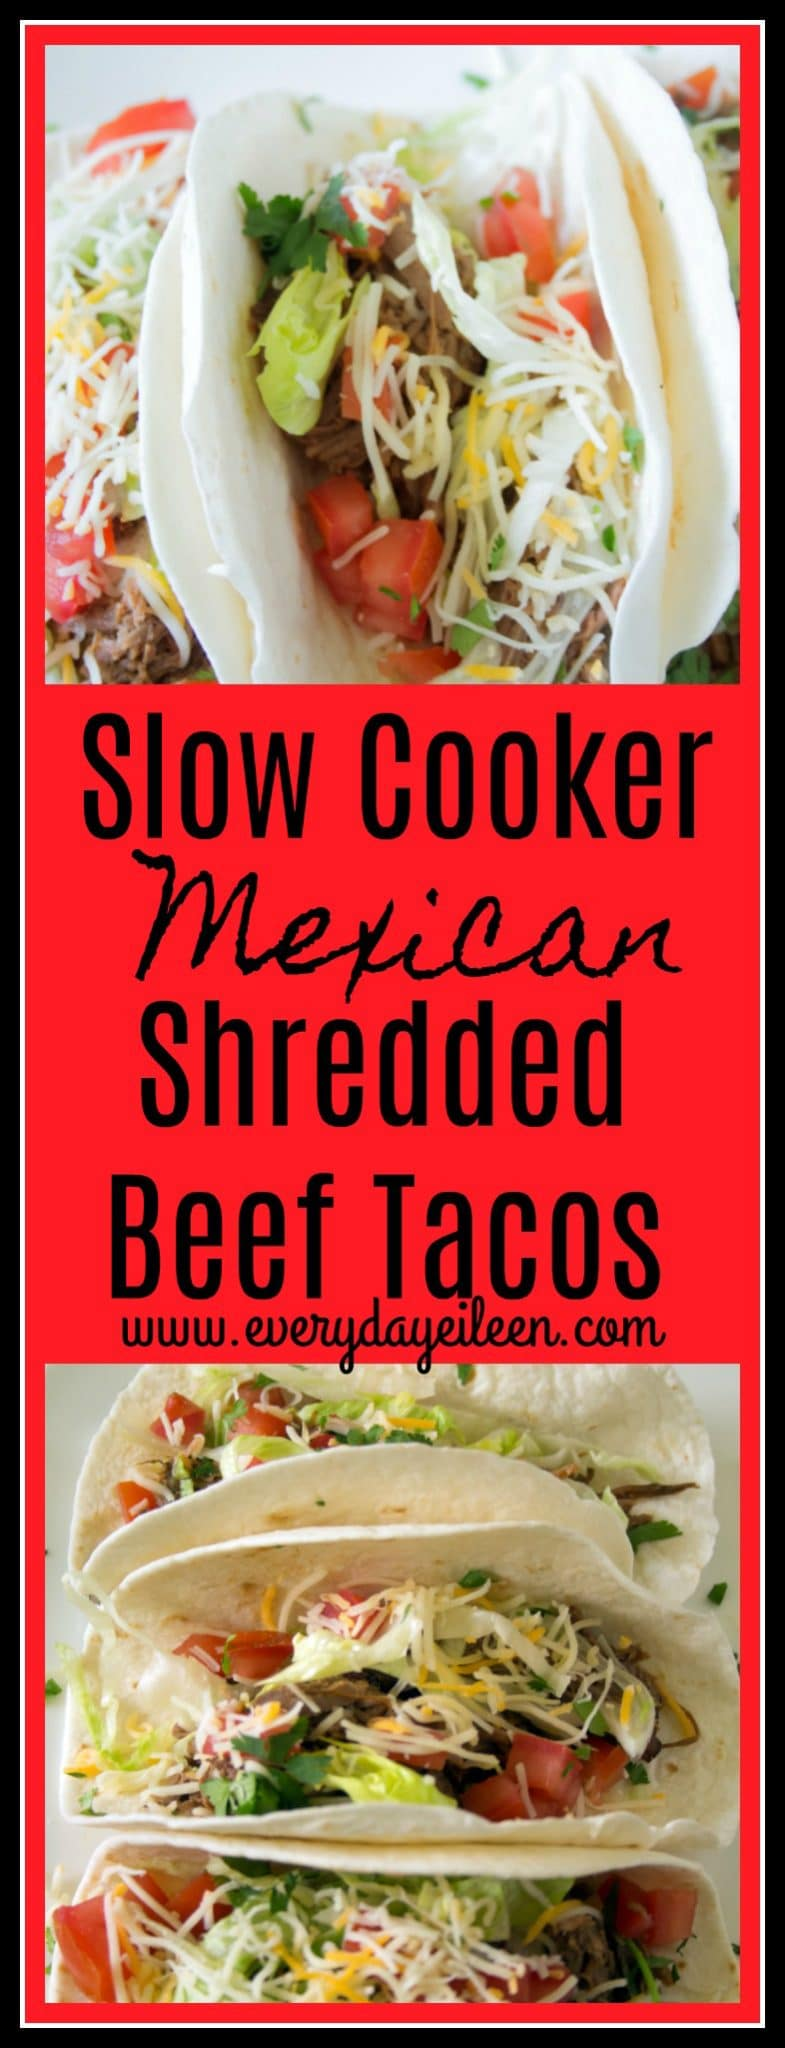 slow cooker Mexican shredded beef tacos